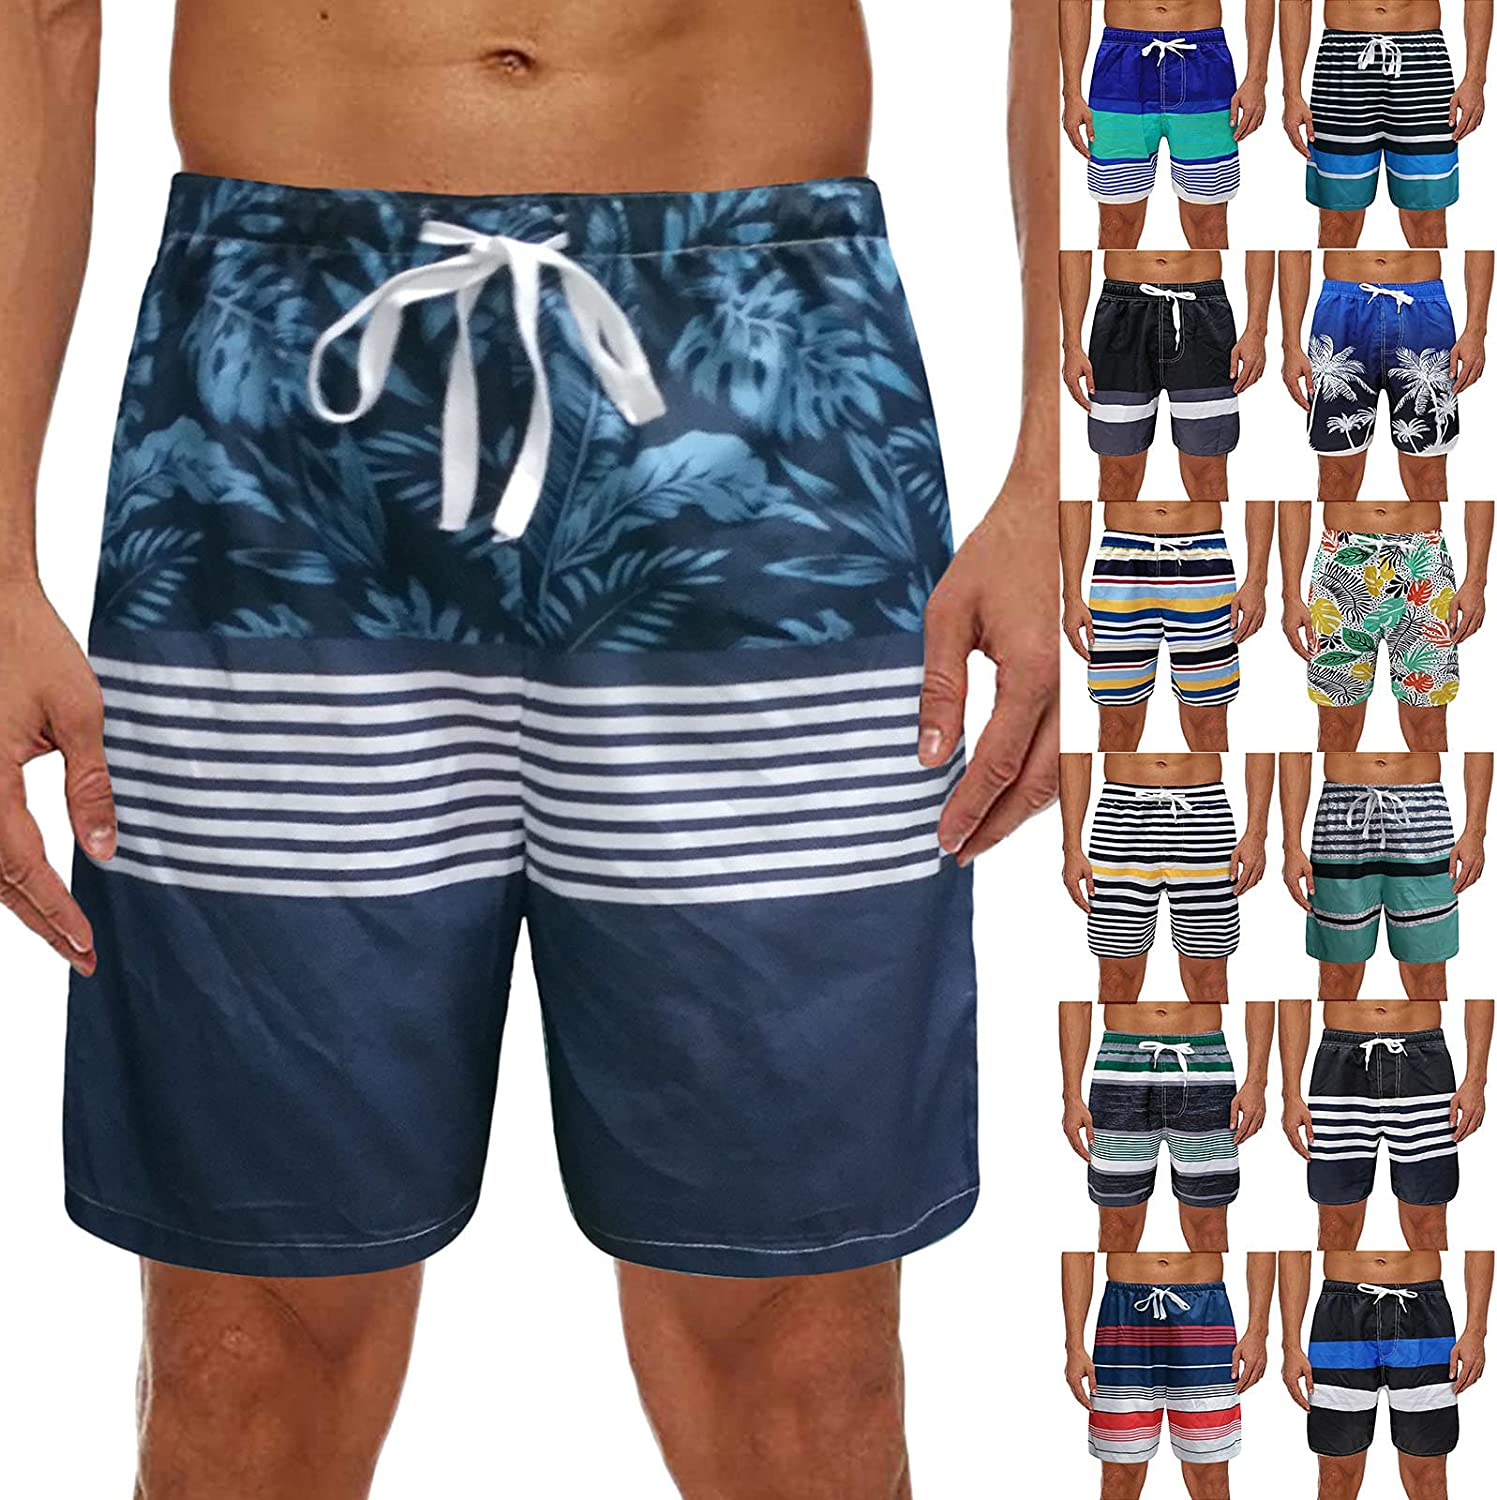 Swim Trunks for Men Summer Quick Dry Board Shorts Fashion Printed Beach Shorts Bathing Suits with Pockets